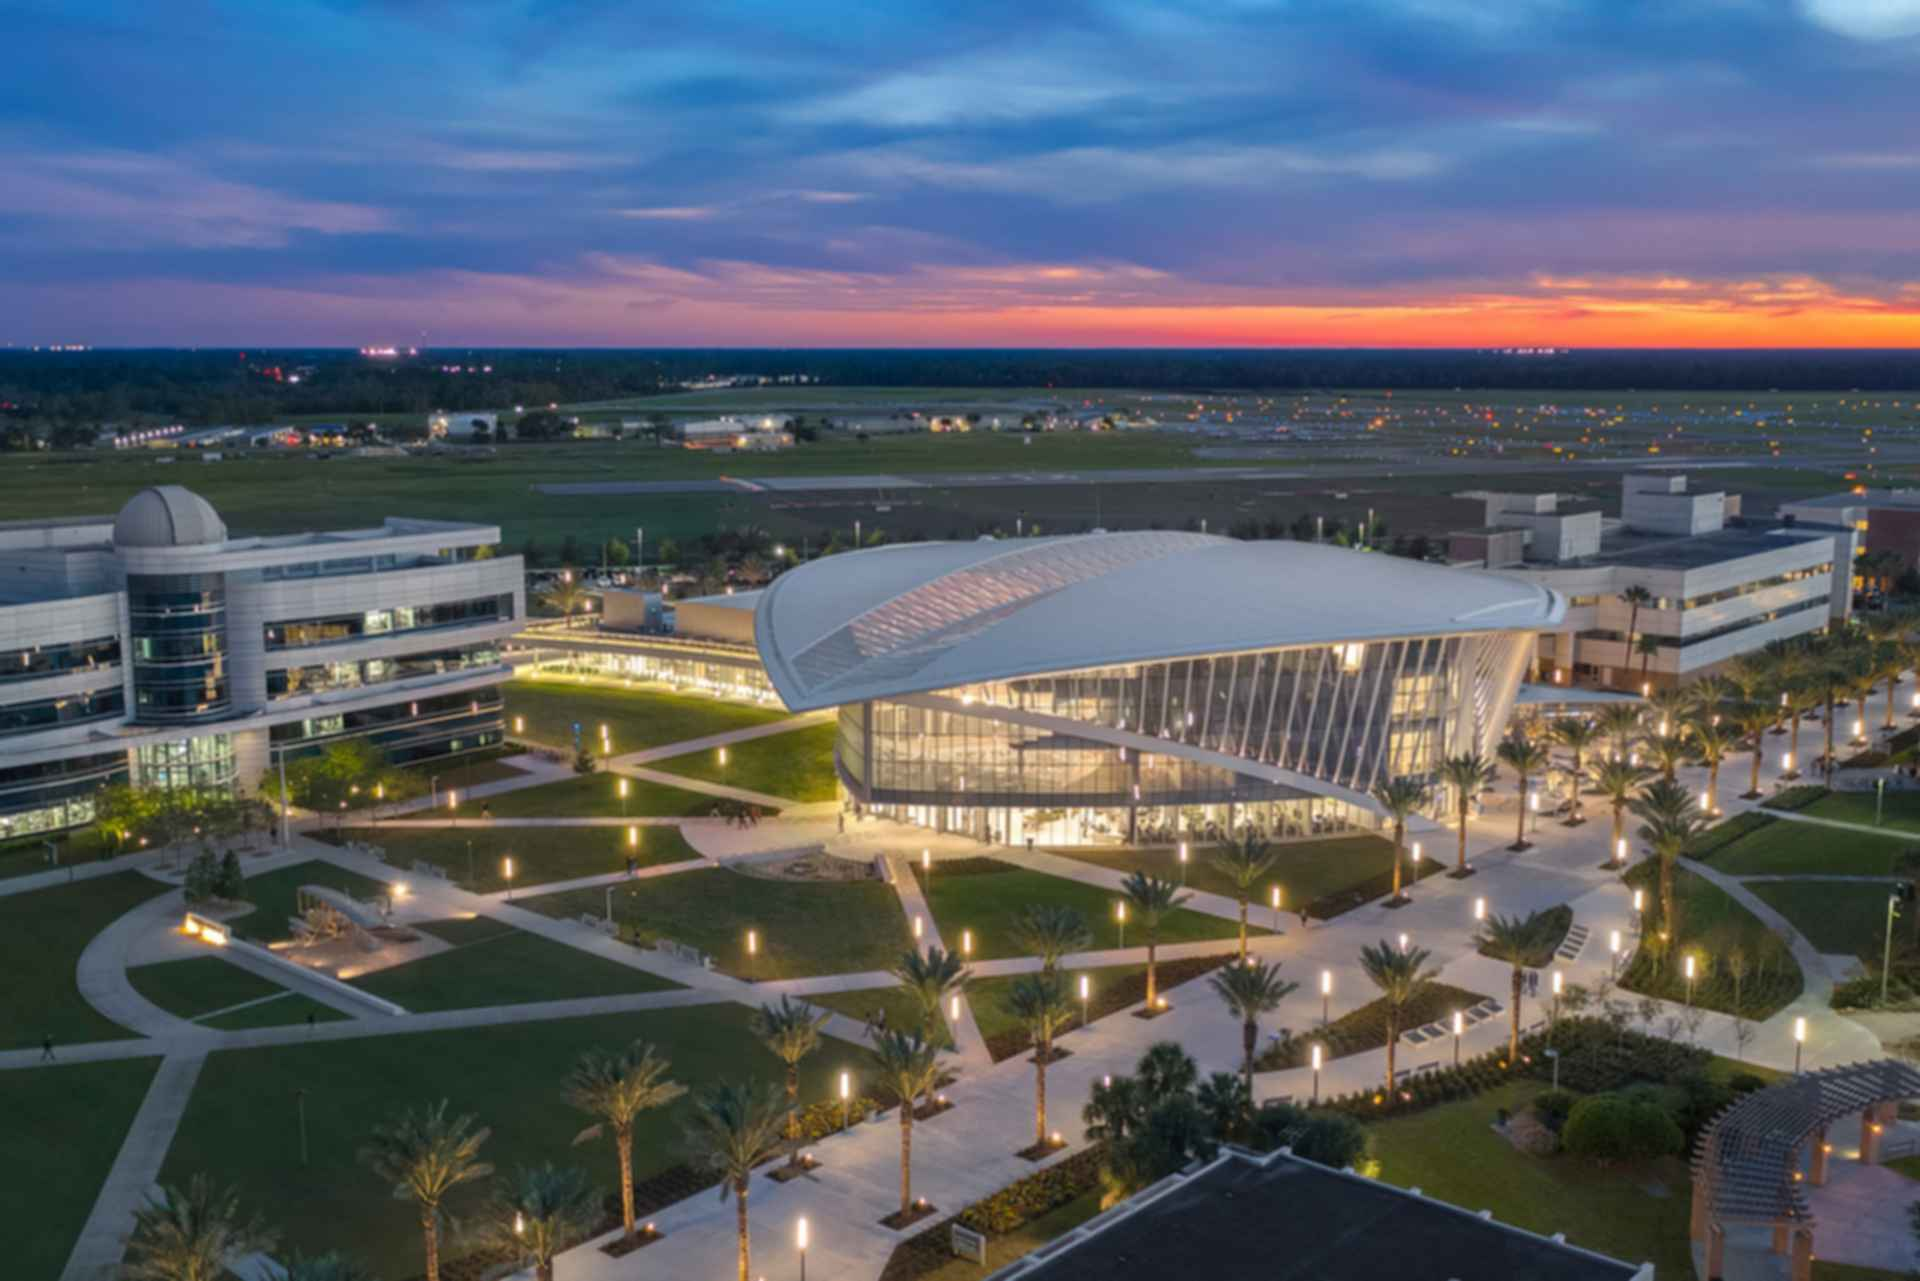 Embry-Riddle Aeronautical University - Exterior